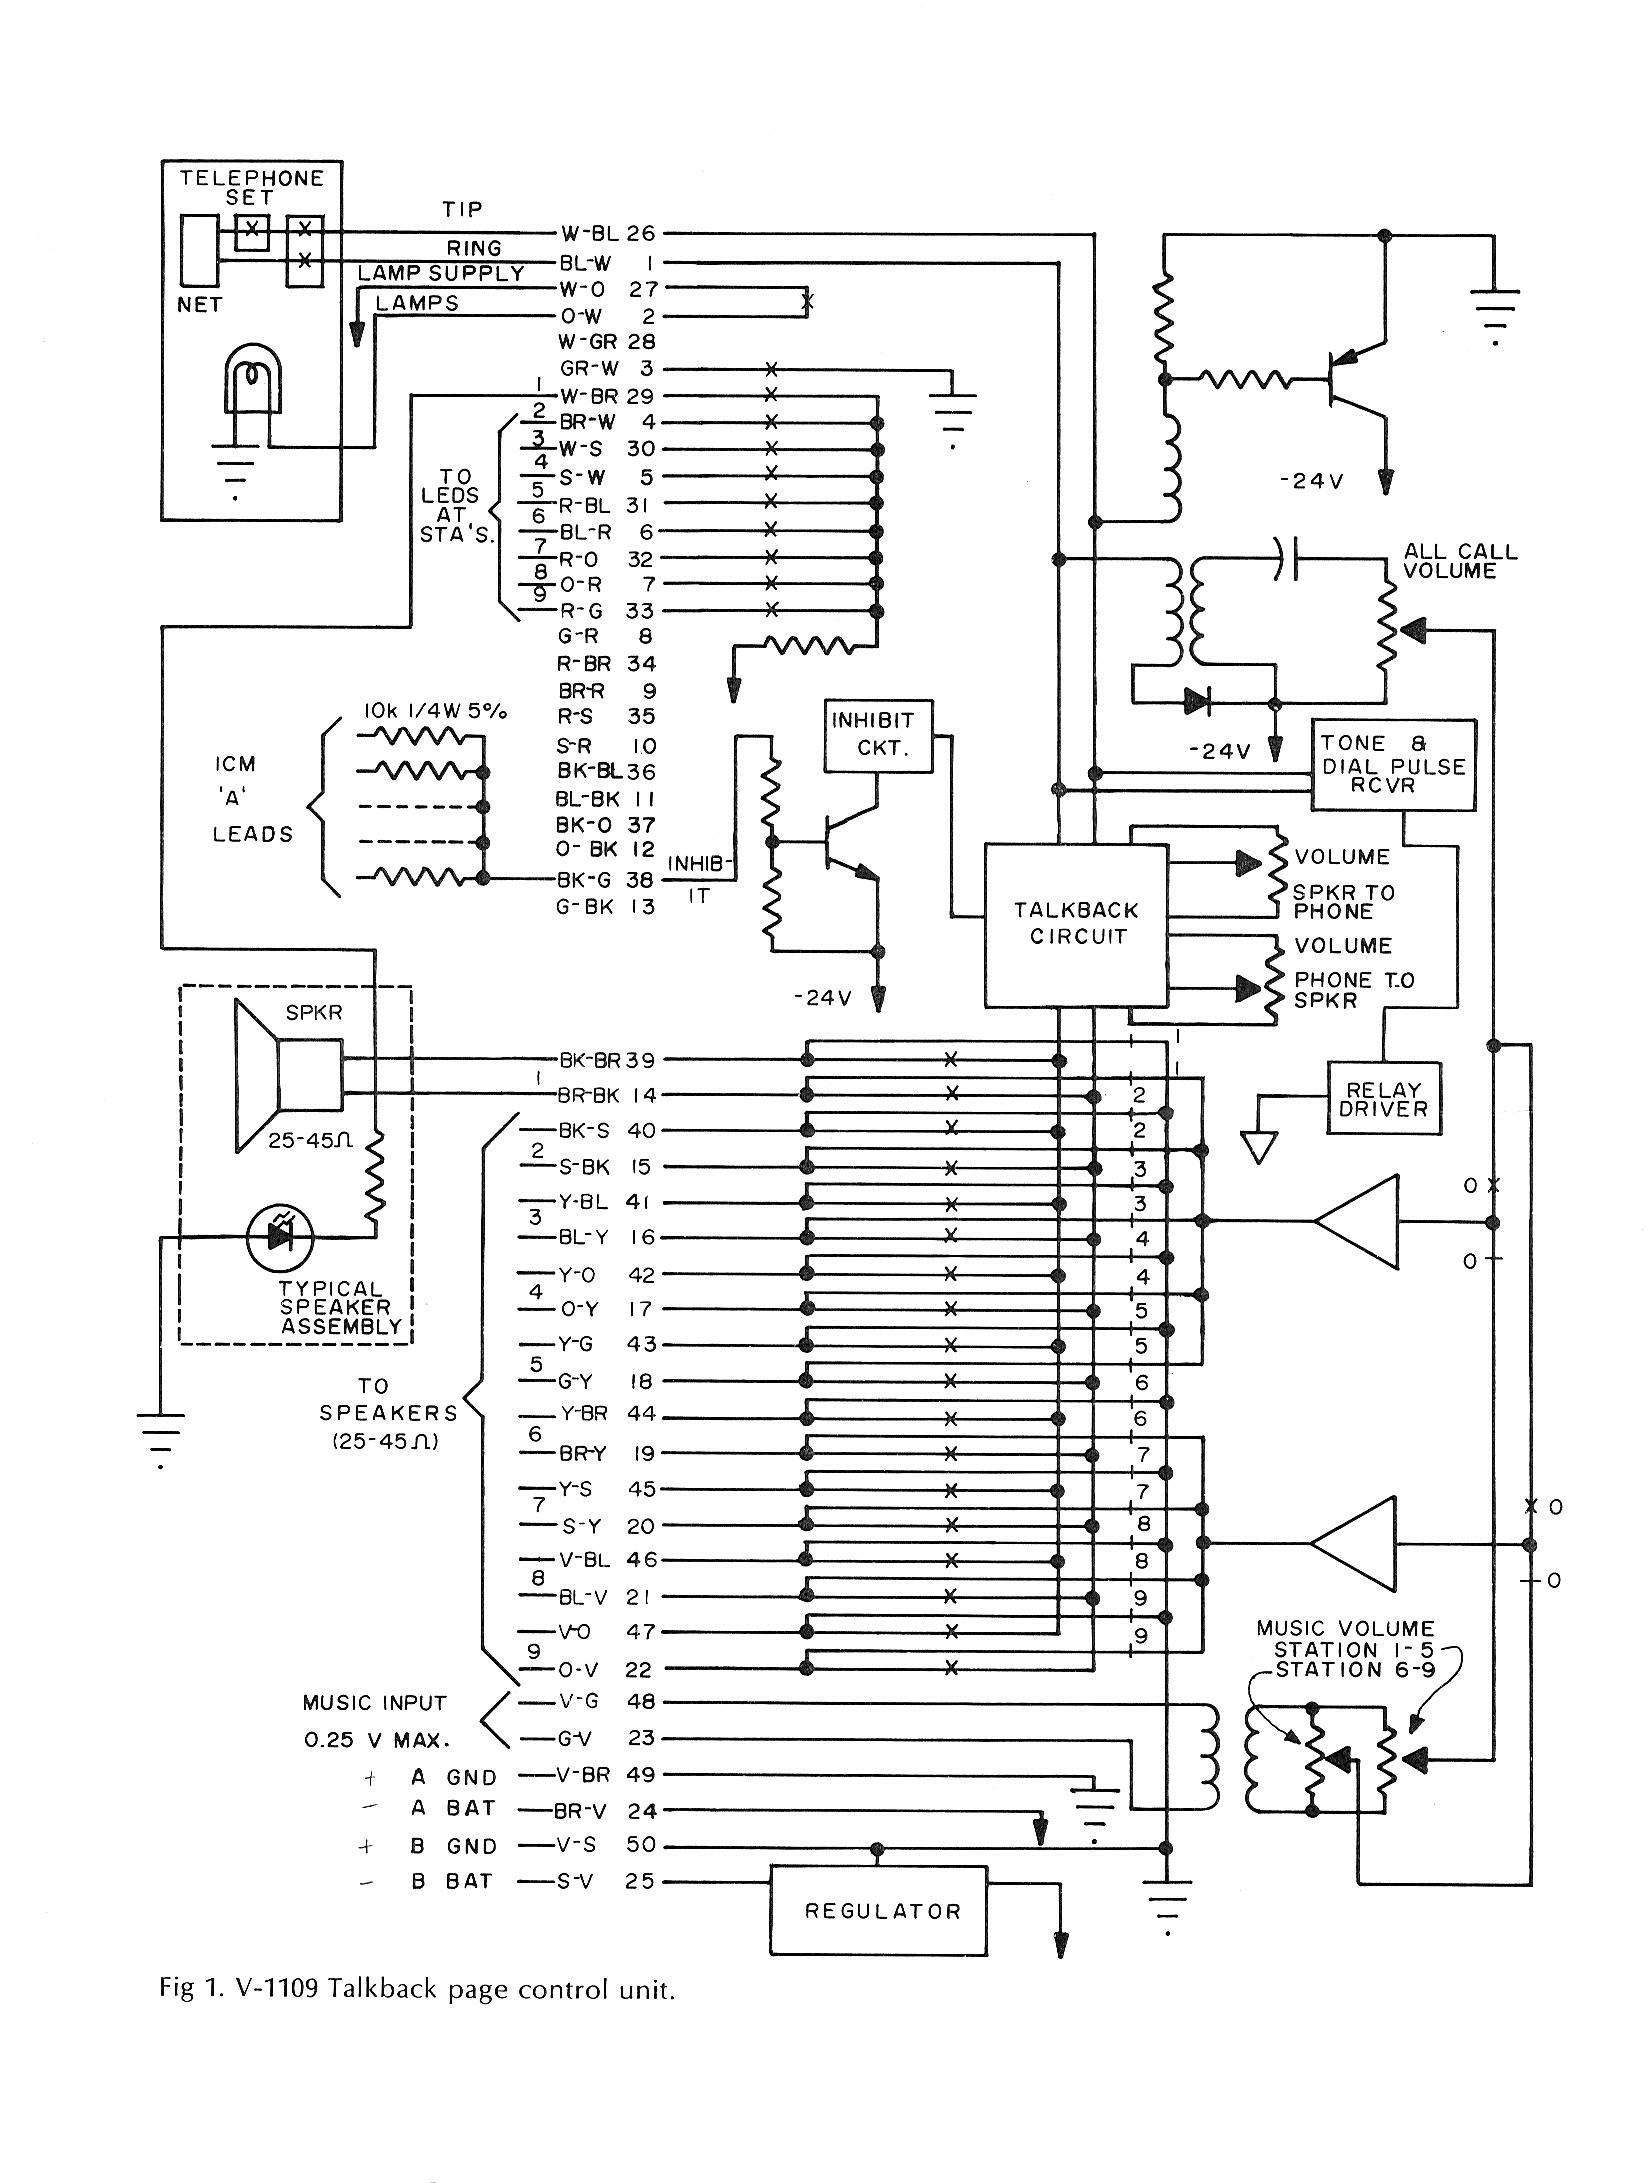 valcom1109 telephone technical references western electric 554 wiring diagram at gsmx.co